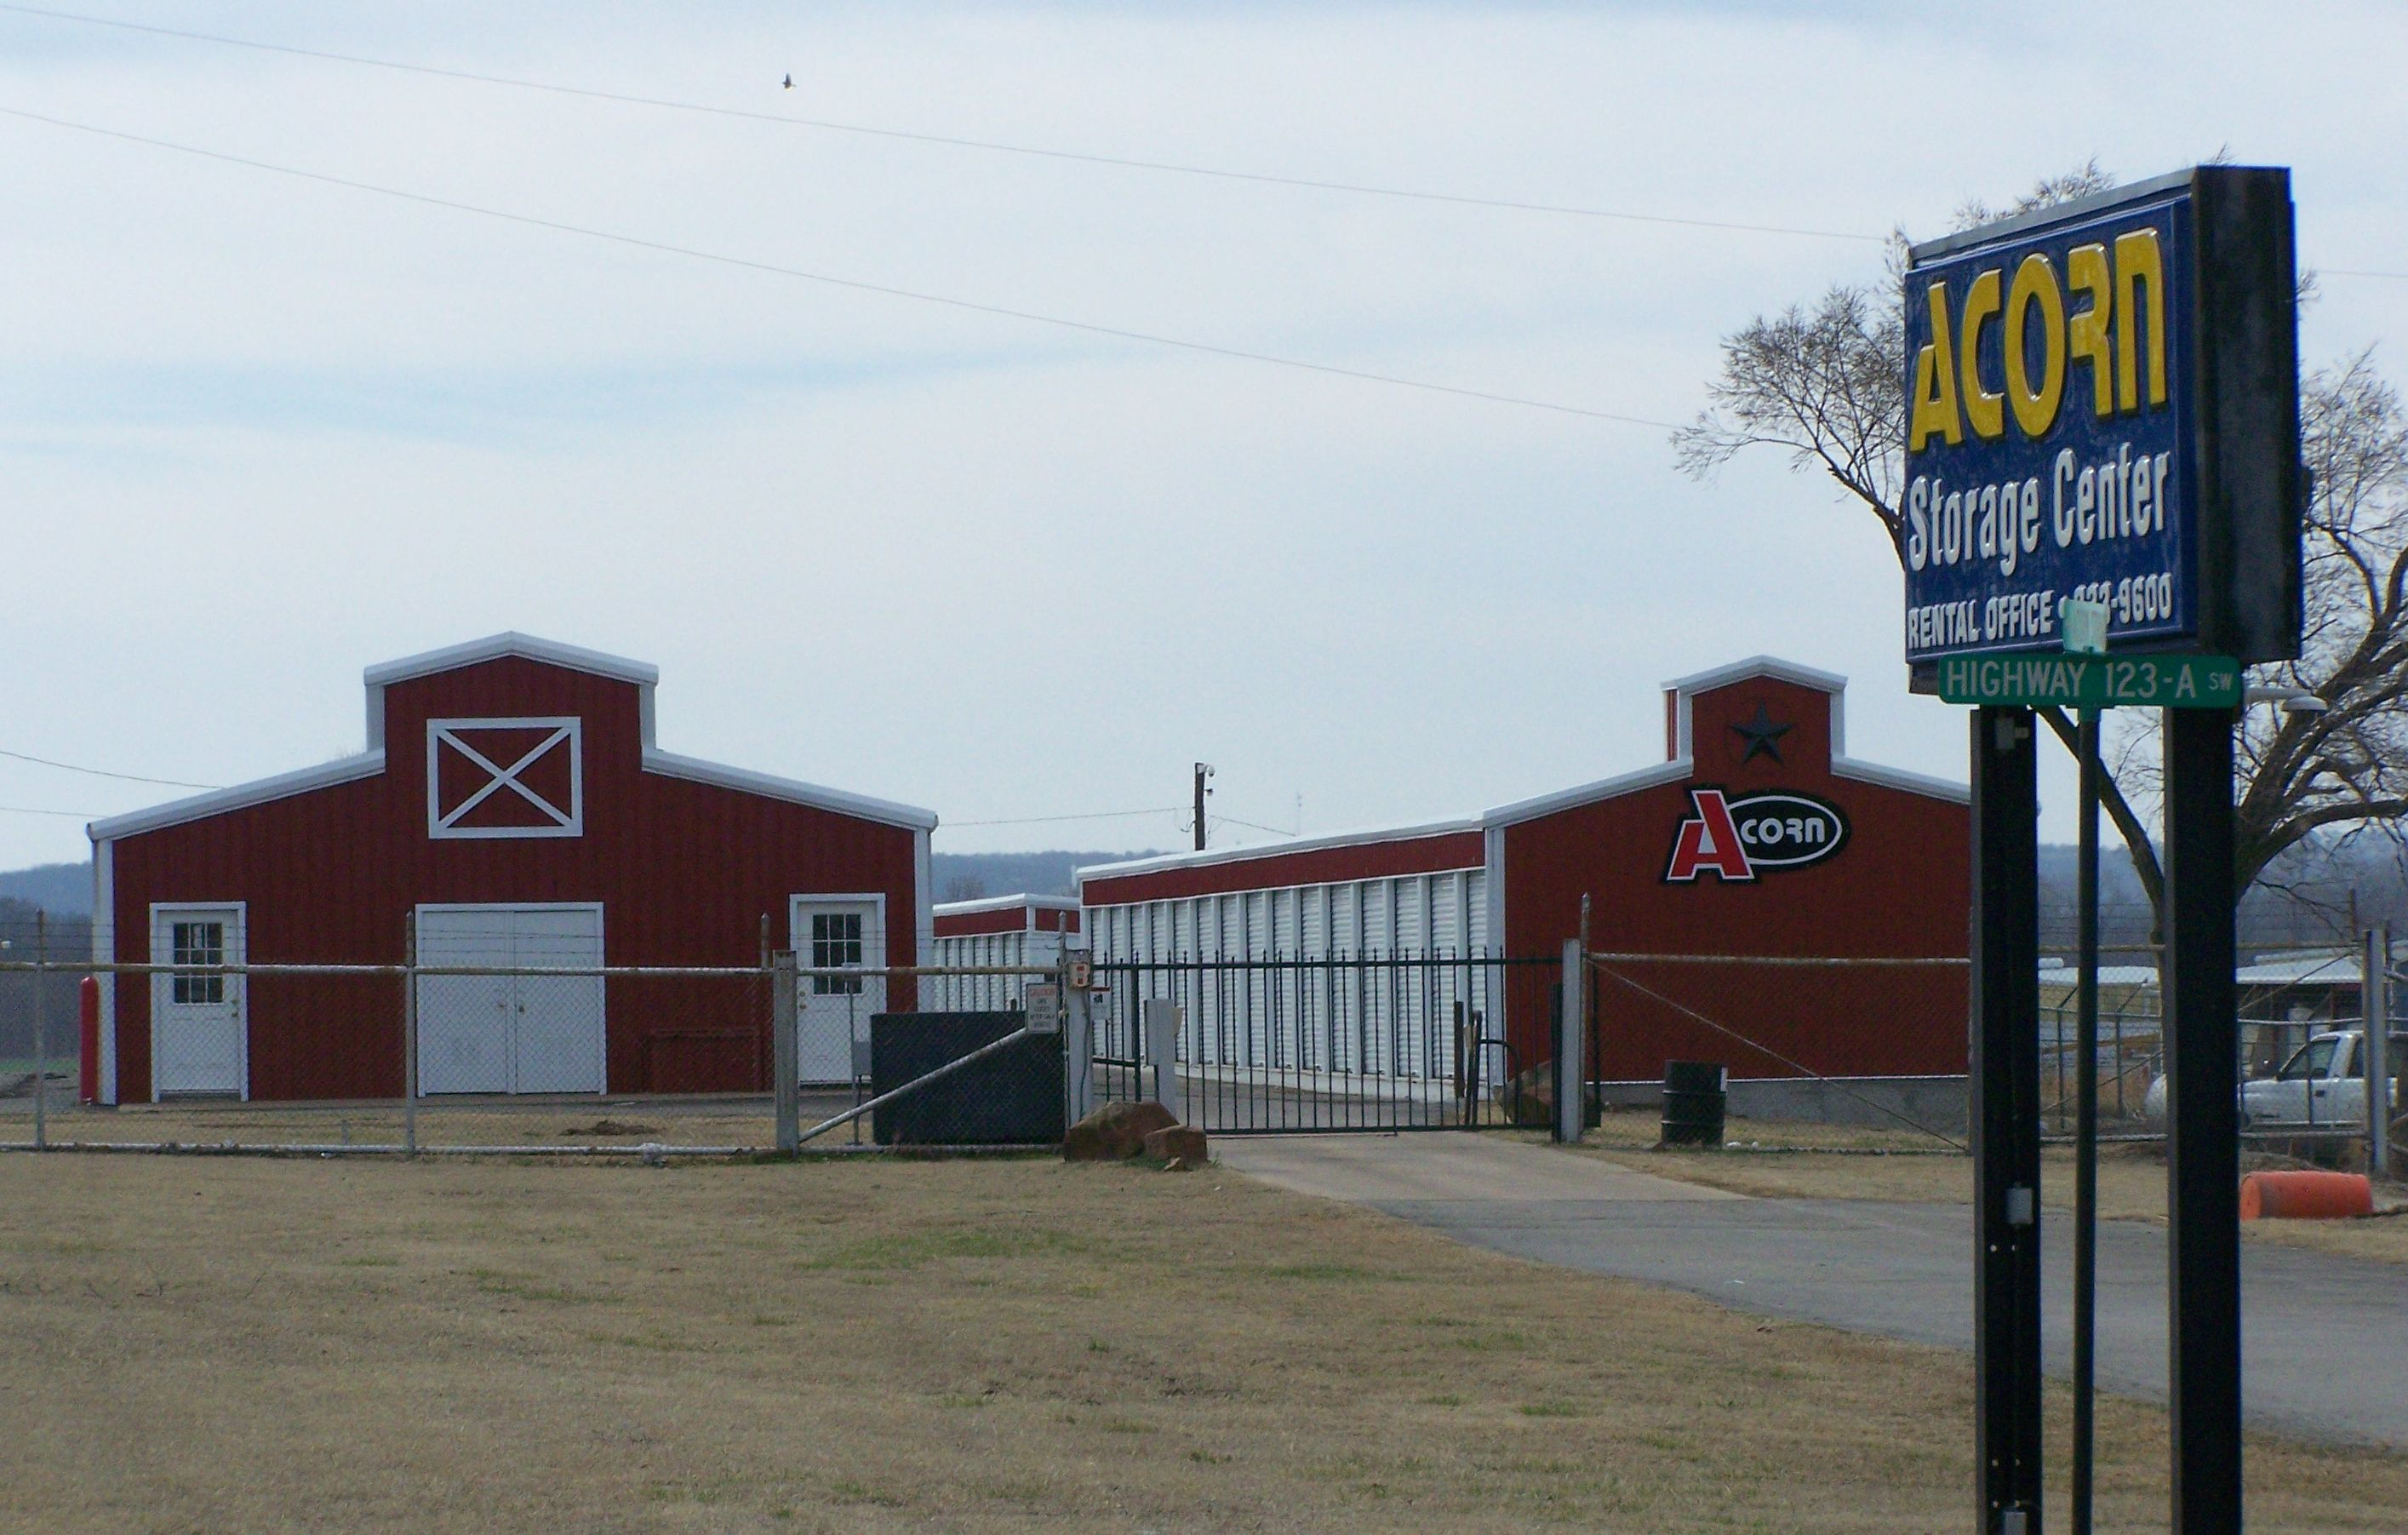 Self Storage on HWY 123